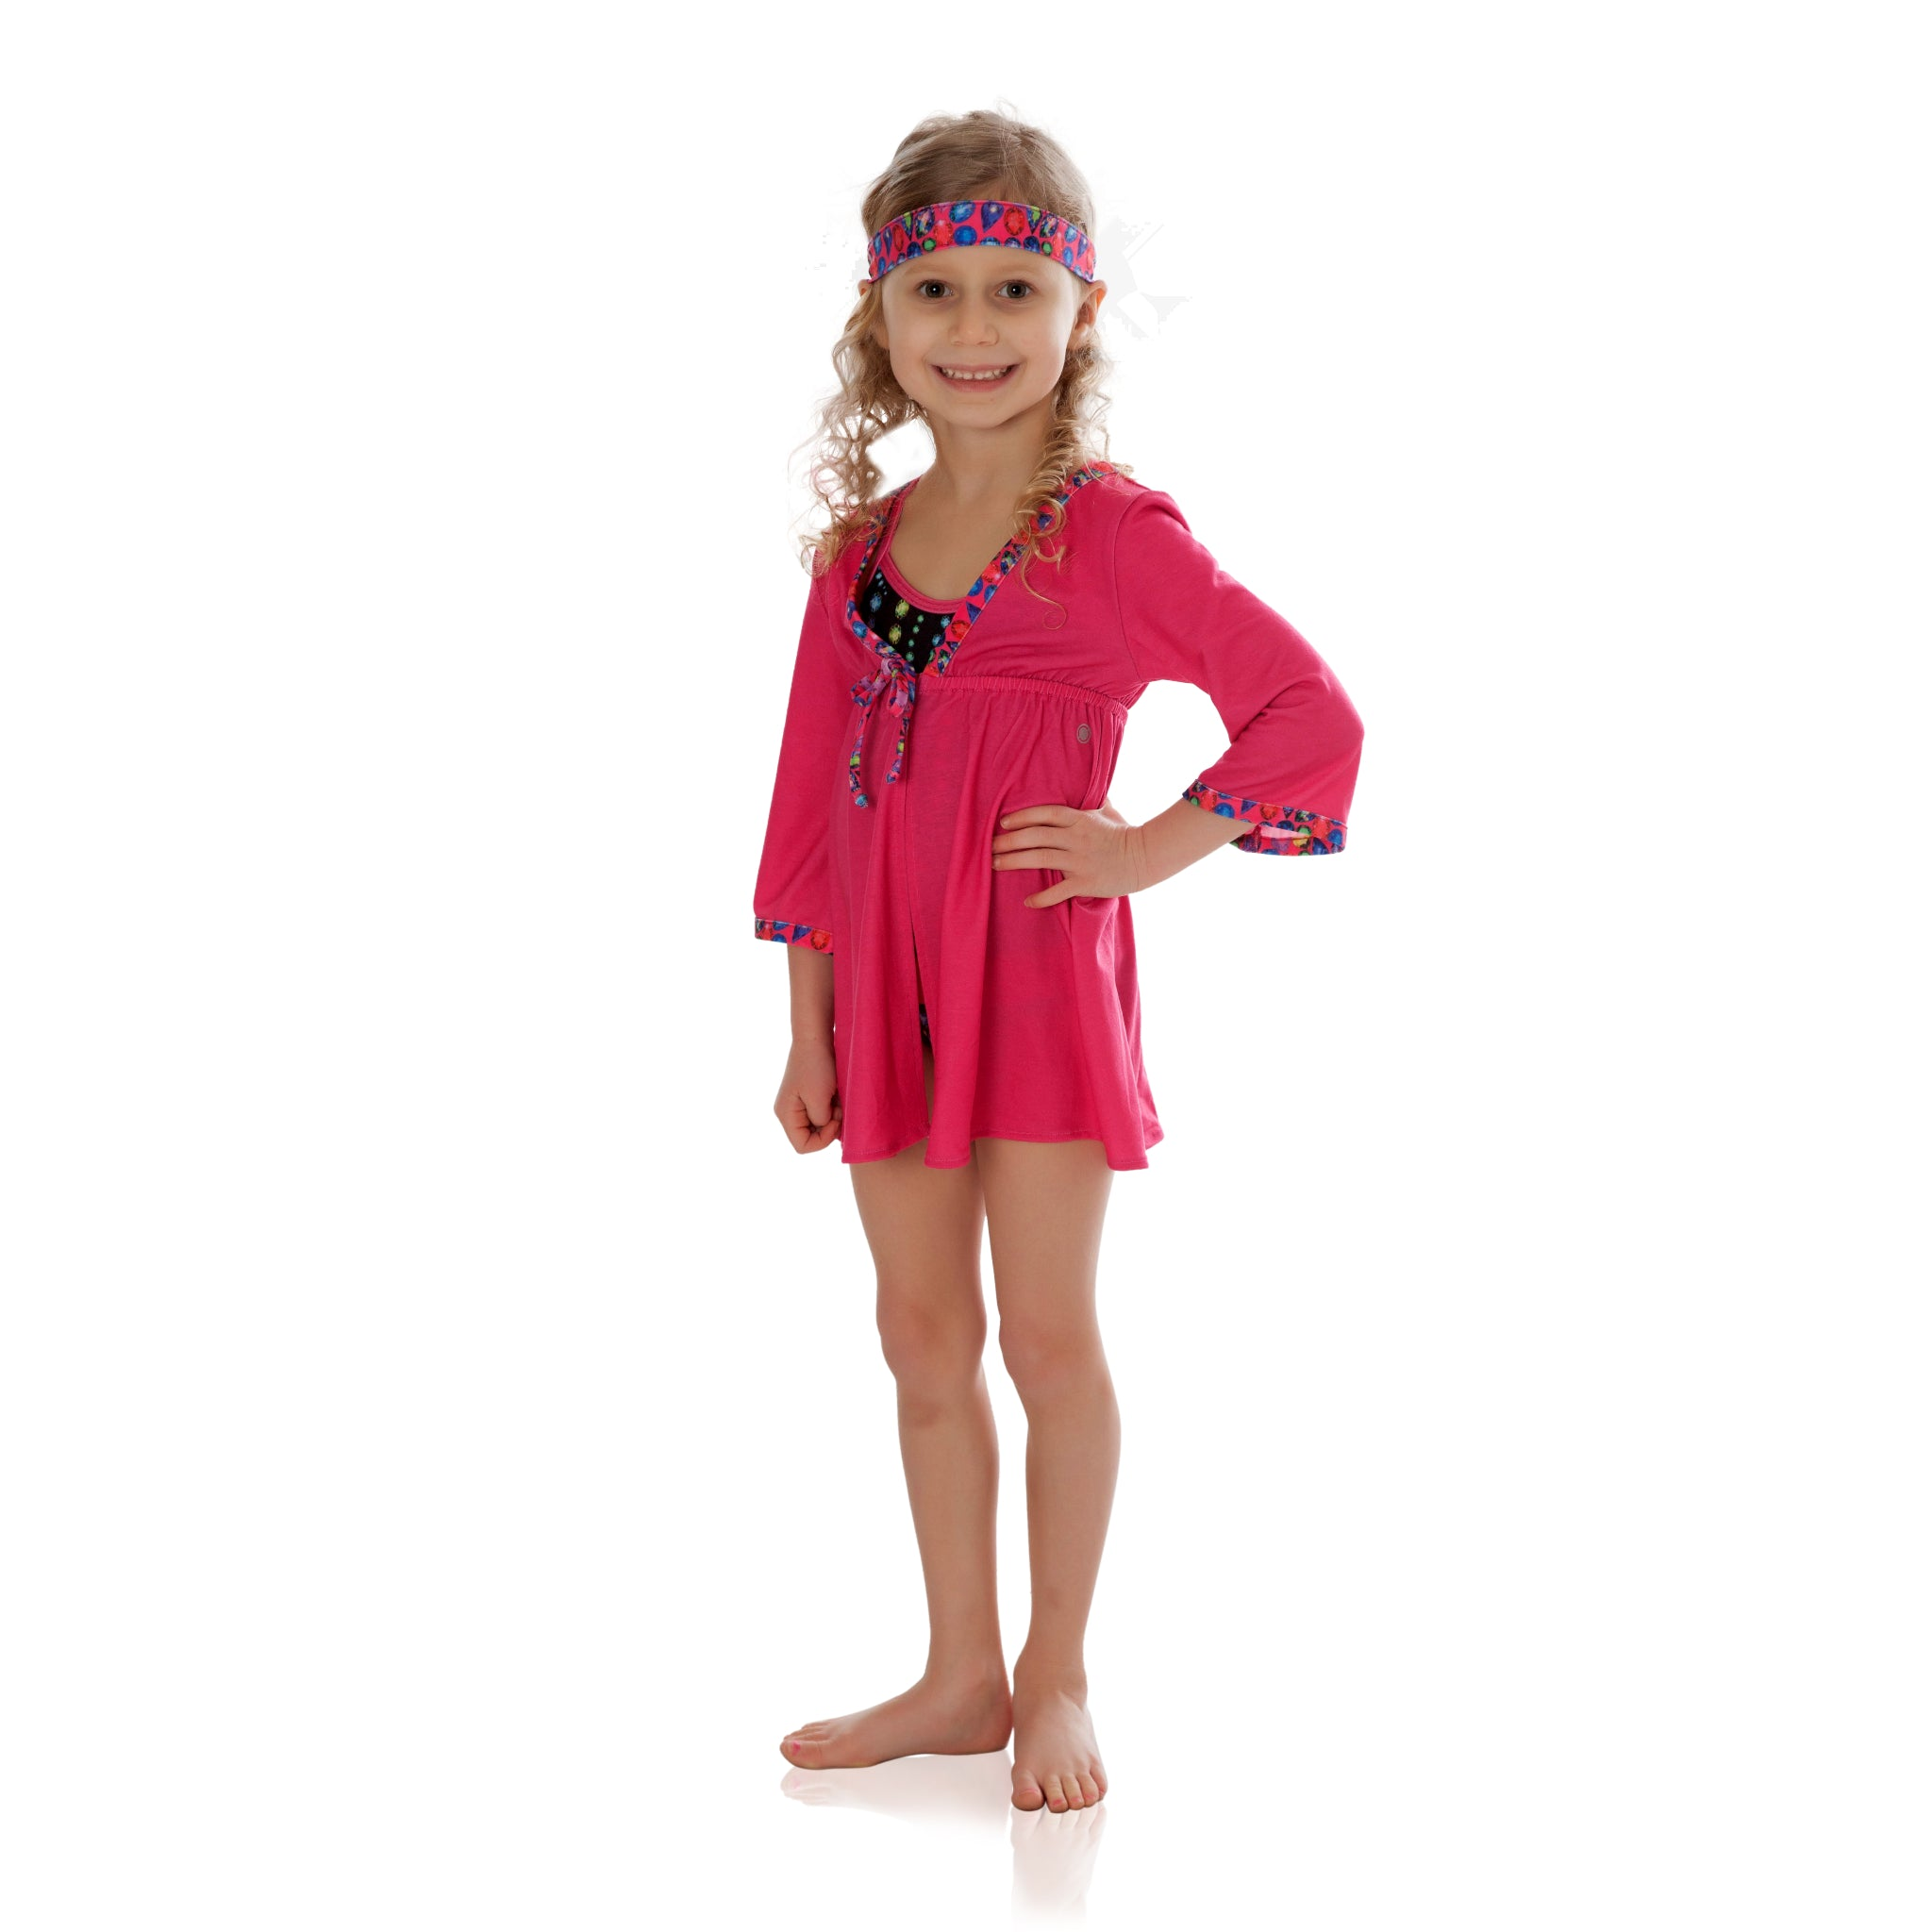 FASTEN toddler cover up with UPF 50+ sun protection. Beautiful fuchsia color with jewels trim. Great sun protection for your toddler girl.